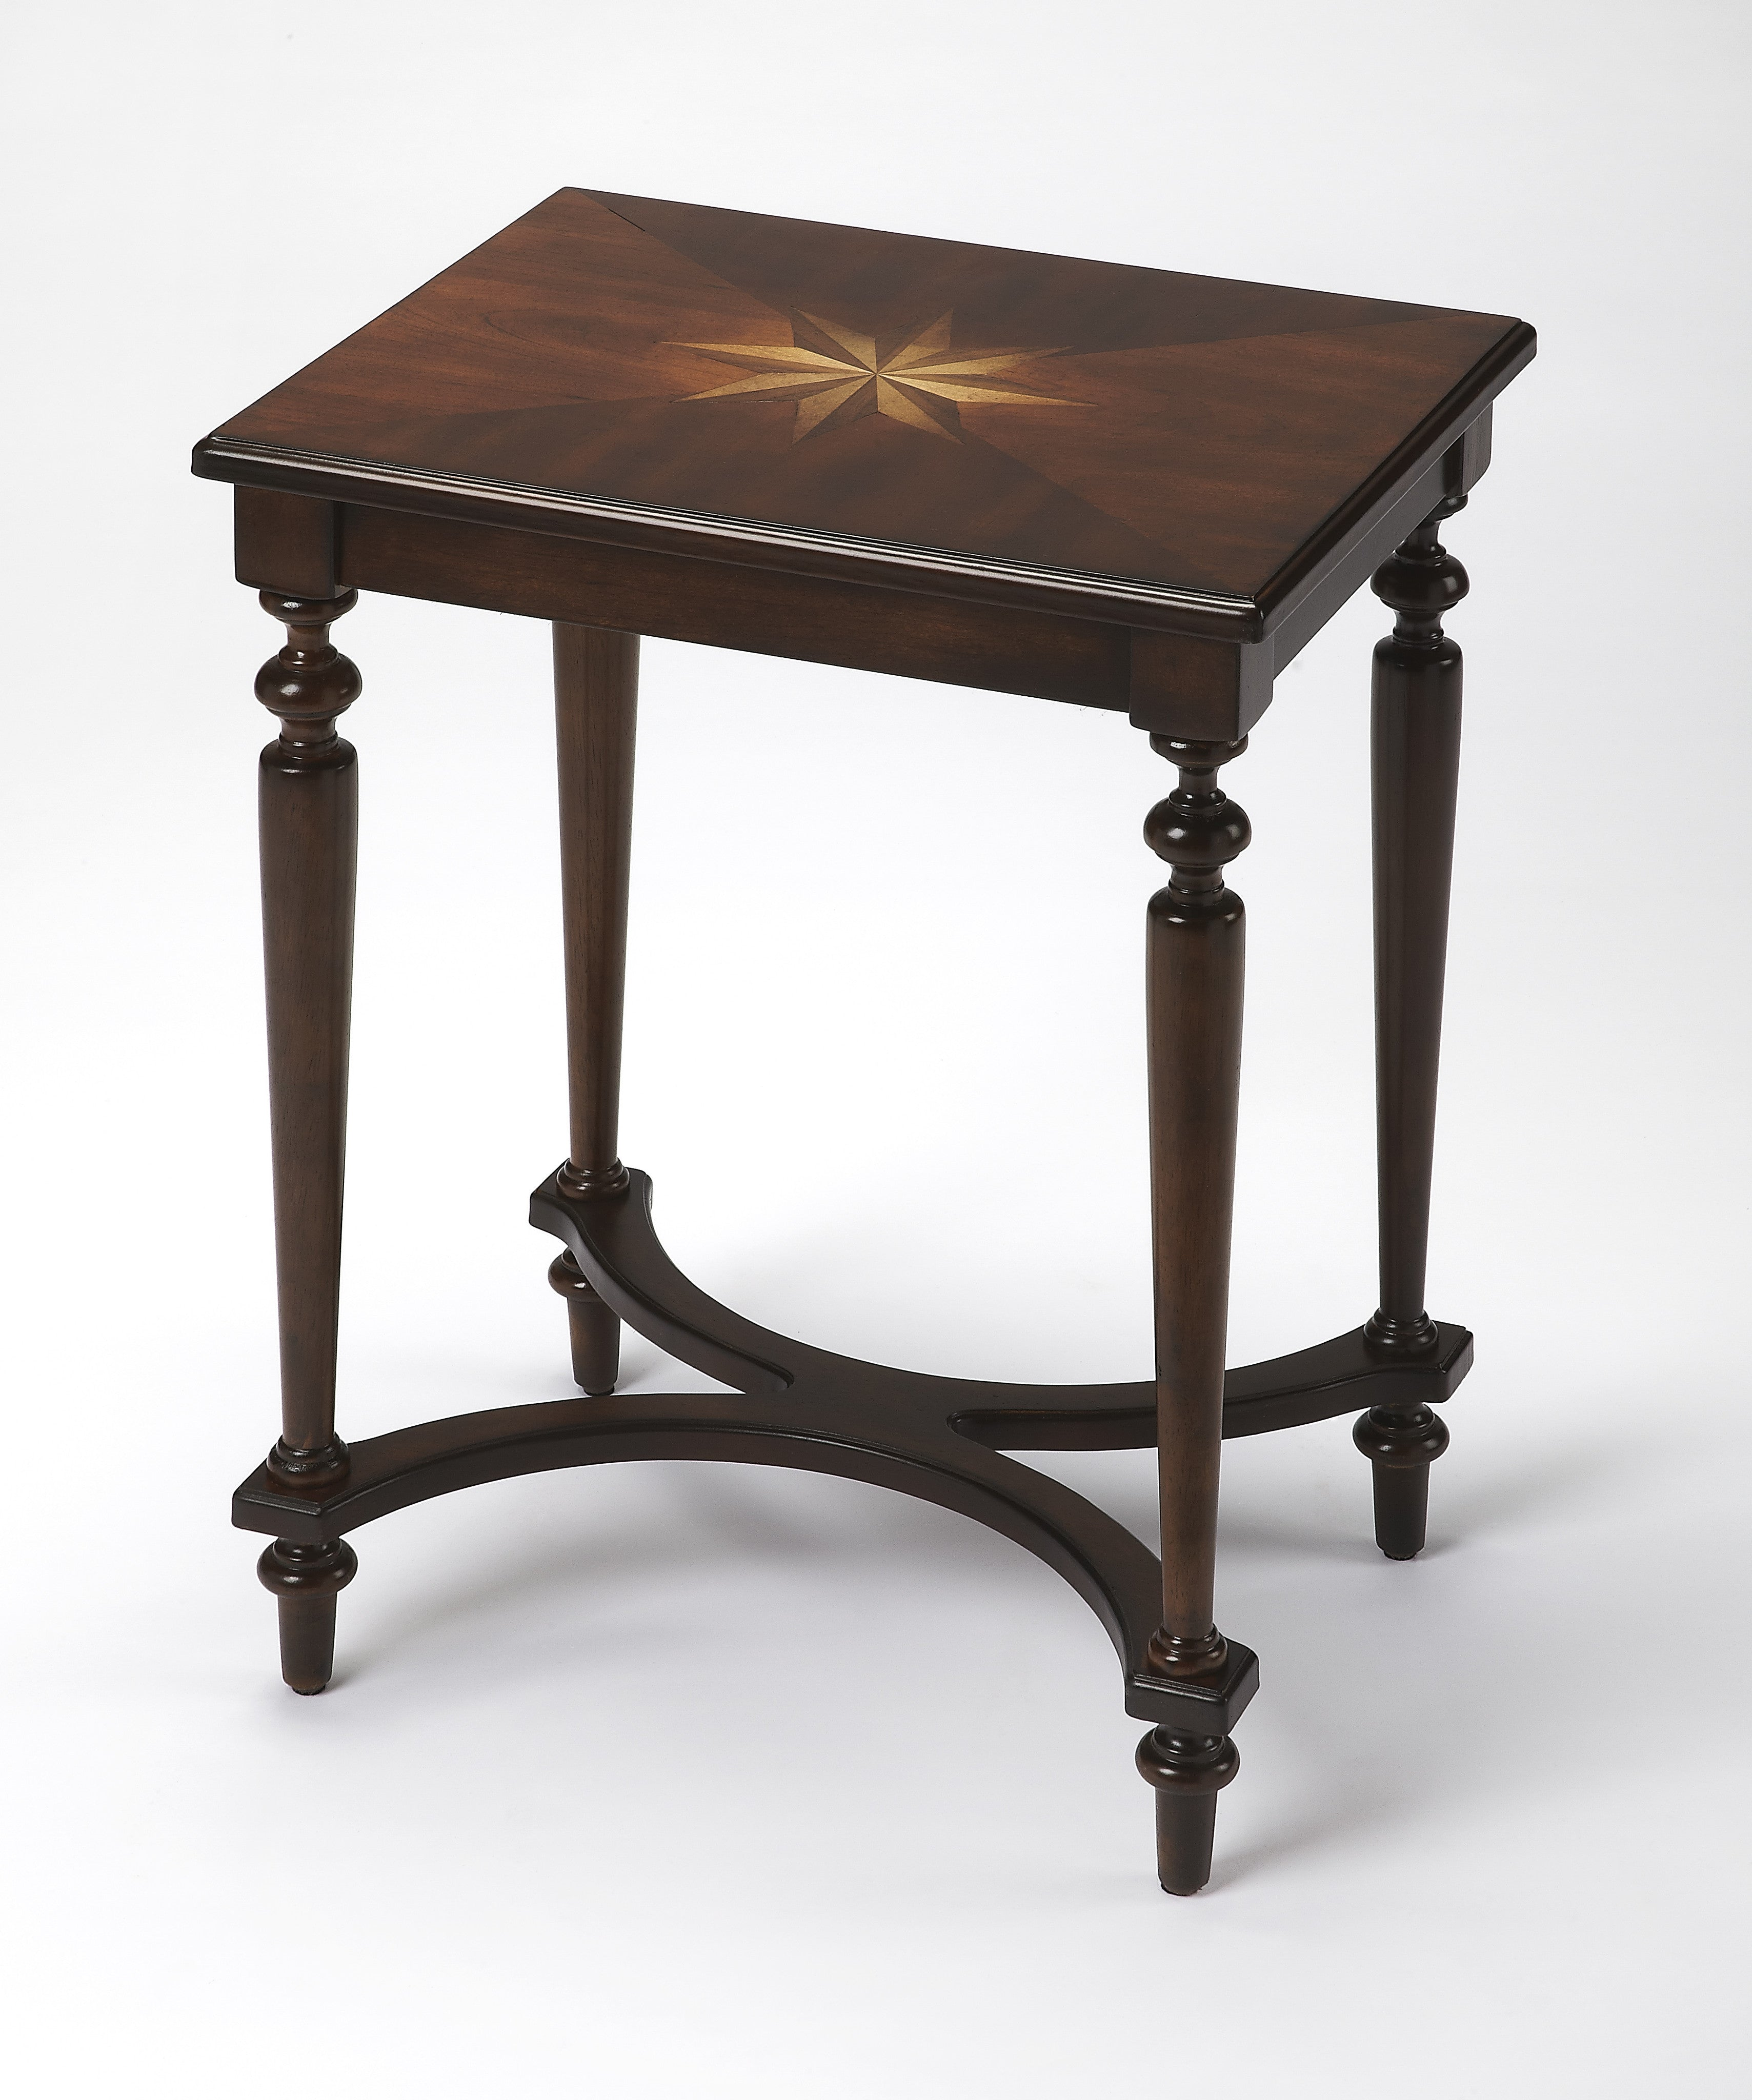 Tyler Plantation Cherry Accent Table By Butler Specialty Company 21160 The Rustic Furniture Store